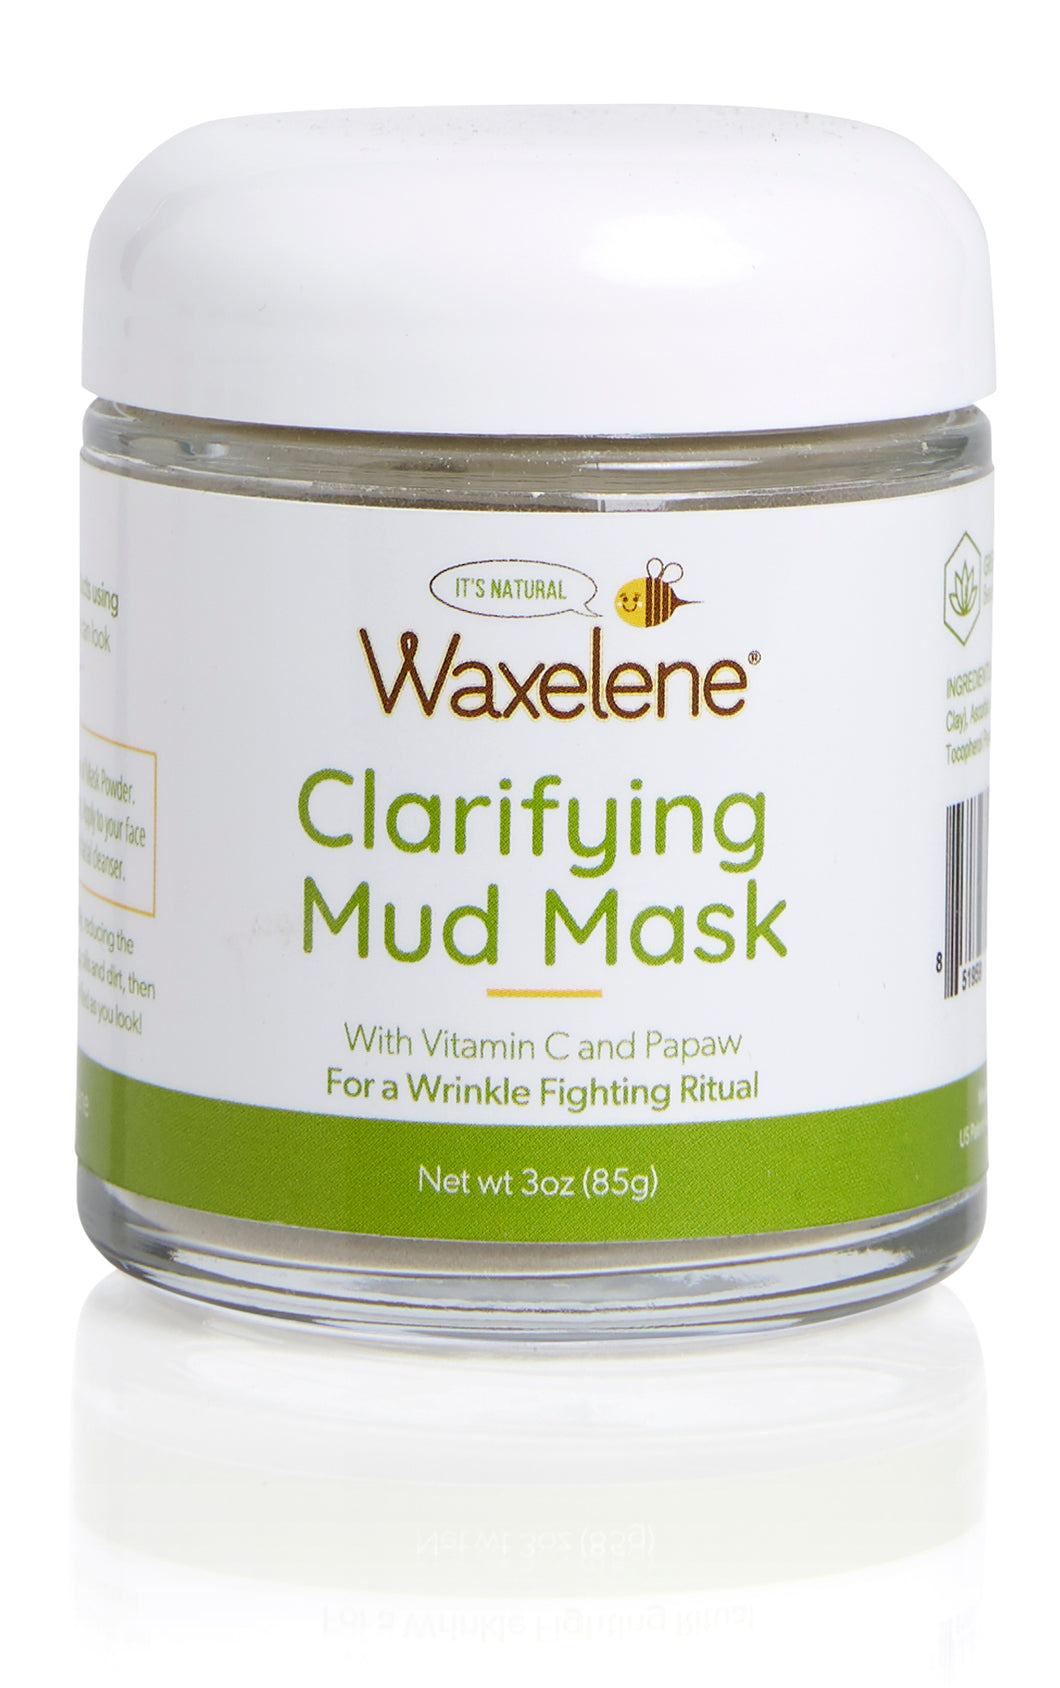 Clarifying Mud Mask - Dry Blend - Makes 36+ Masks!